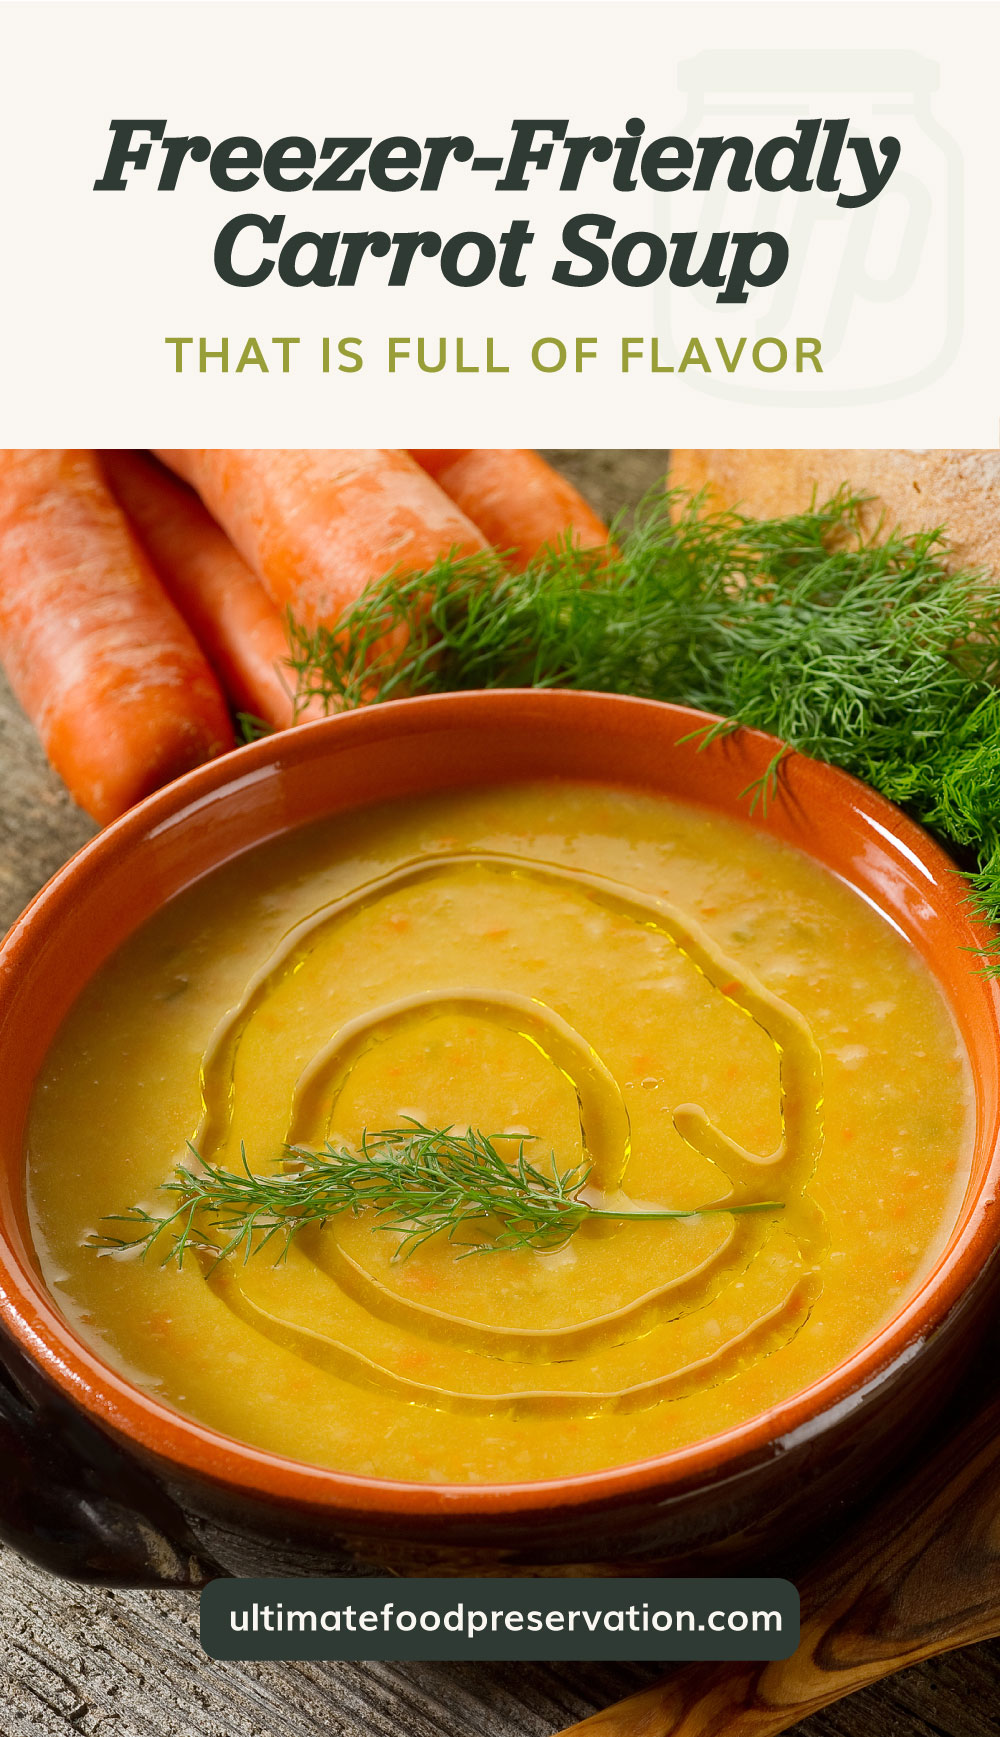 """Text area which says """"Freezer-Friendly Carrot Soup That Is Full Of Flavor"""" next to a high-angle view of carrot soup in a bowl surrounded by more carrots followed by another text area which says ultimatefoodpreservation.com"""